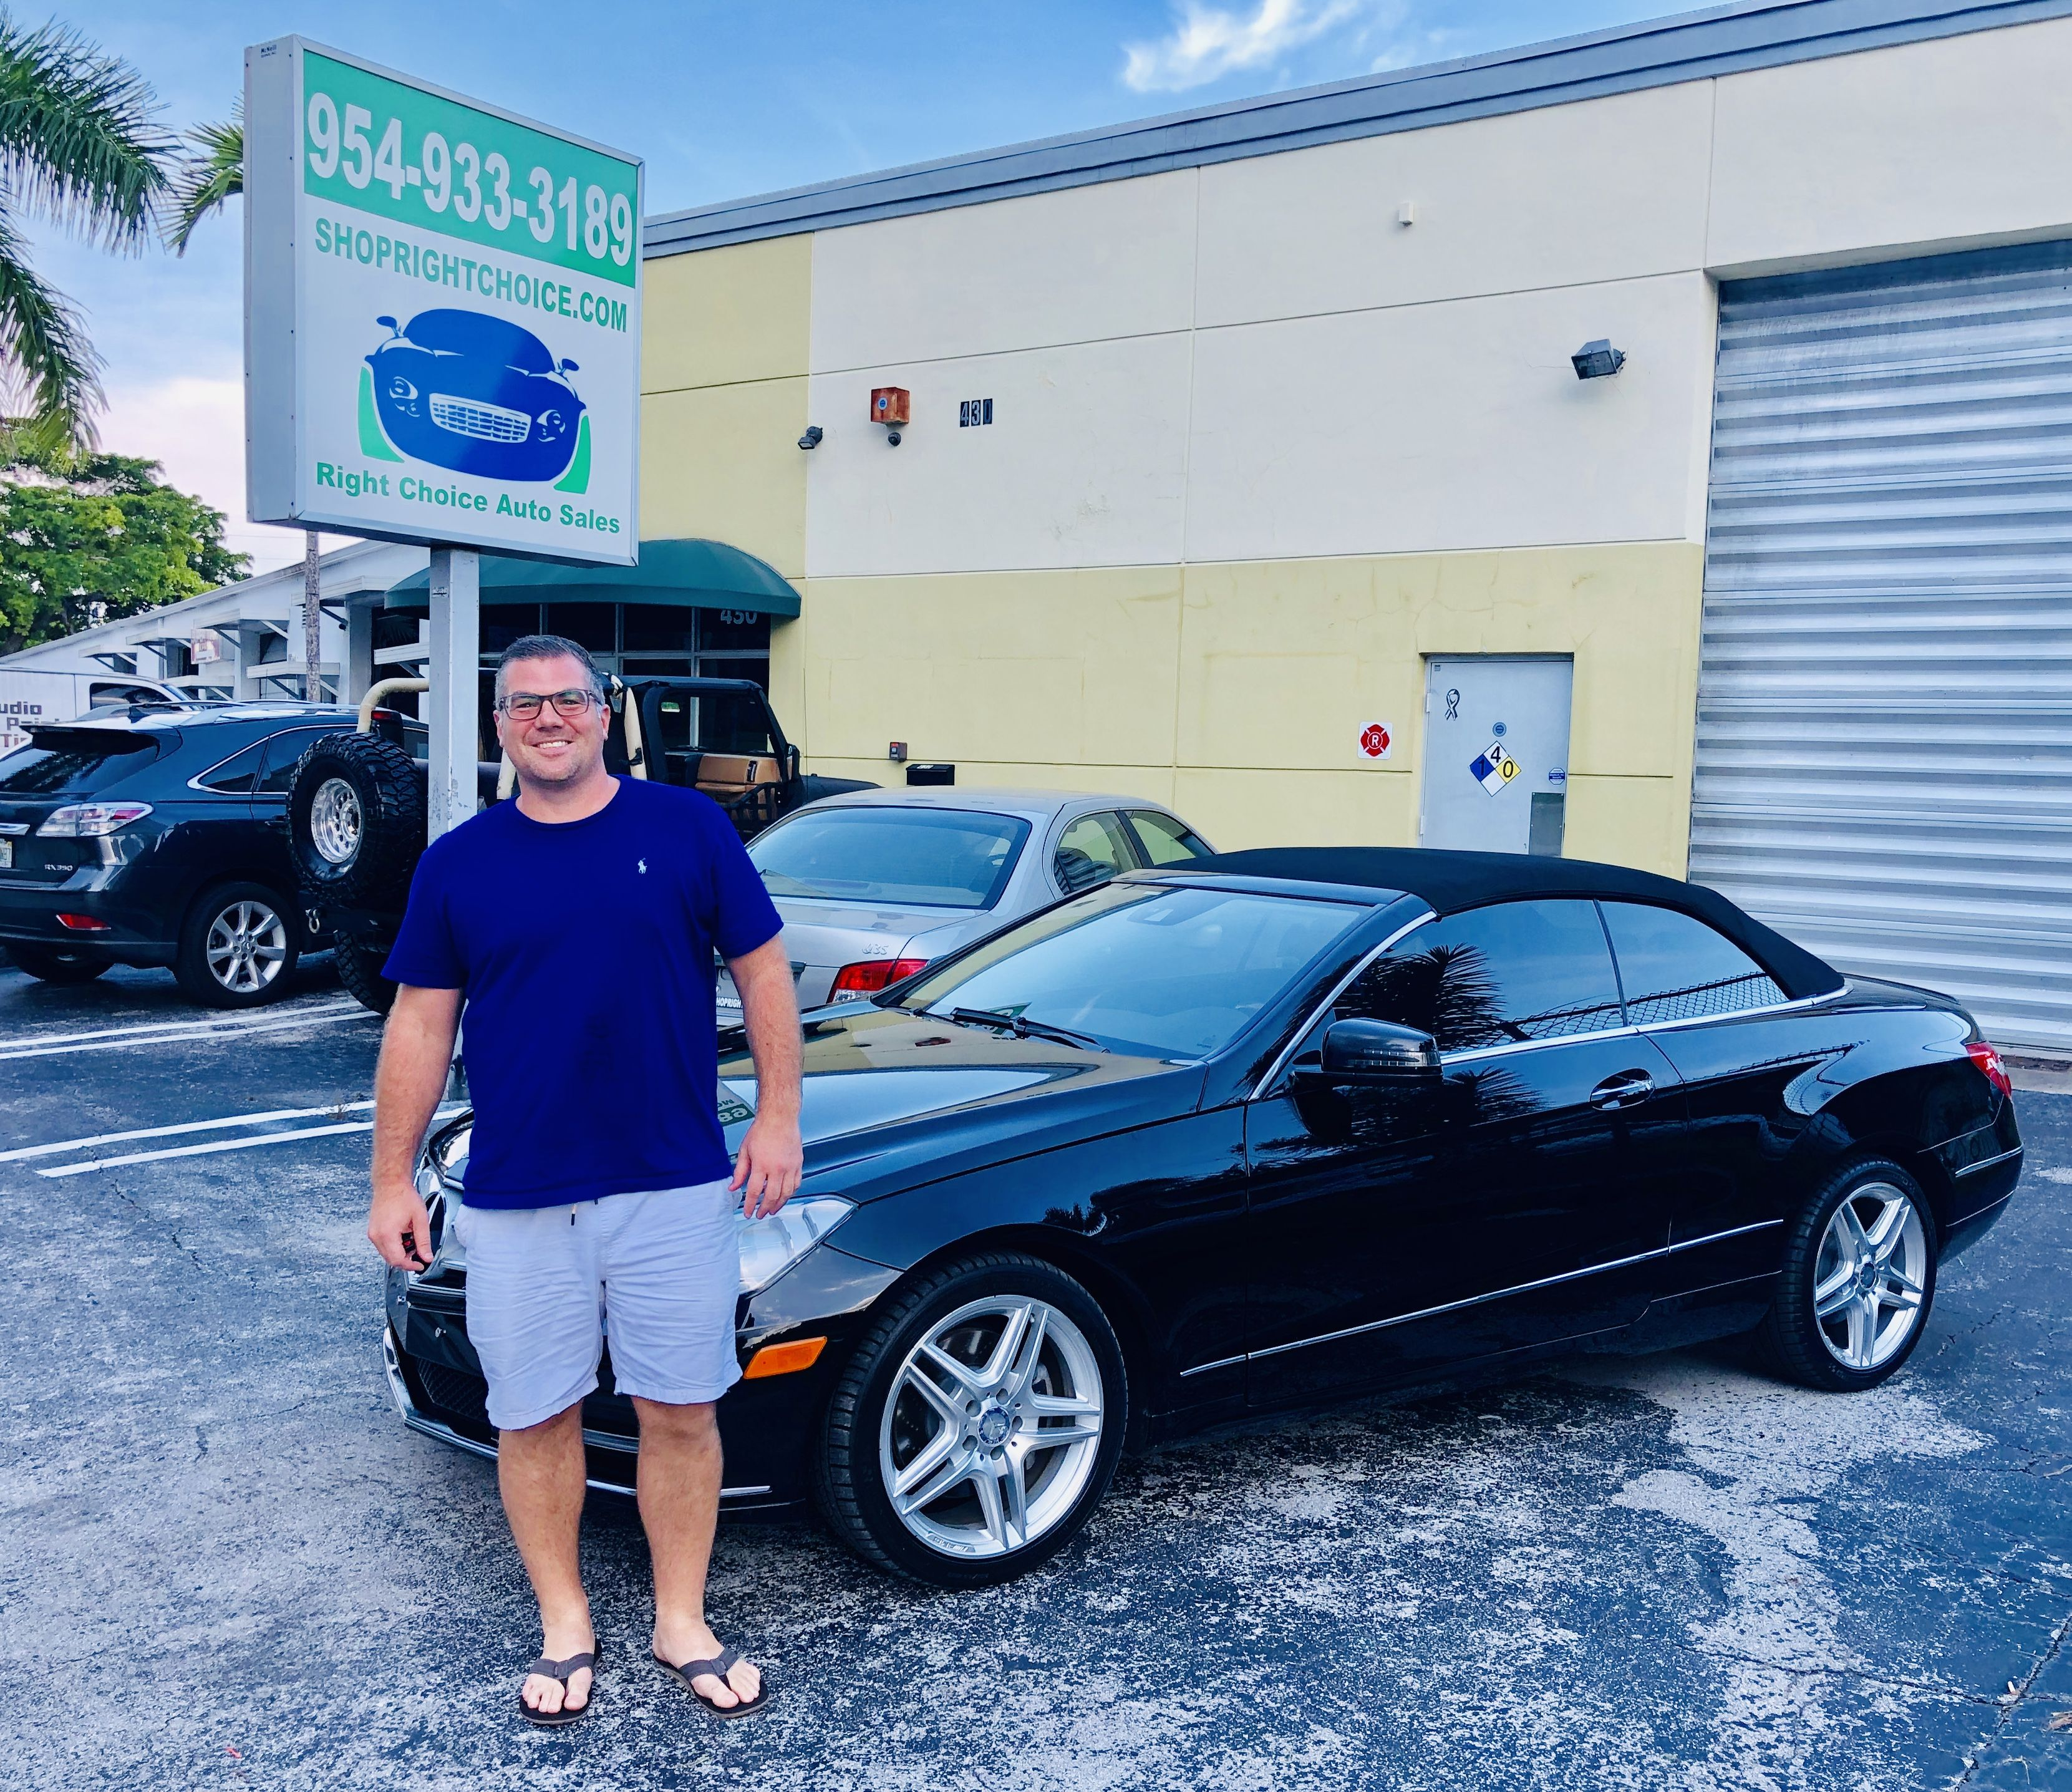 Lance took home this awesome 2013 Mercedes-Benz E350 Convertible with over $9,700 in options and only 36k miles!  Right Choice Auto Sales in Pompano Beach, FL has the best deals in the country on quality, preowned luxury cars!    #mercedesbenz #E350 #E350cabriolet #happycustomer #mercedesforsale #carshopping #carsforsale #usedcardeals #drivehappy #floridacars #mercedesexpert #mercedesshowroom #blackbenz #southfloridacars #luxurycars #luxcar #luxurylife #cardeals #mercedeslife